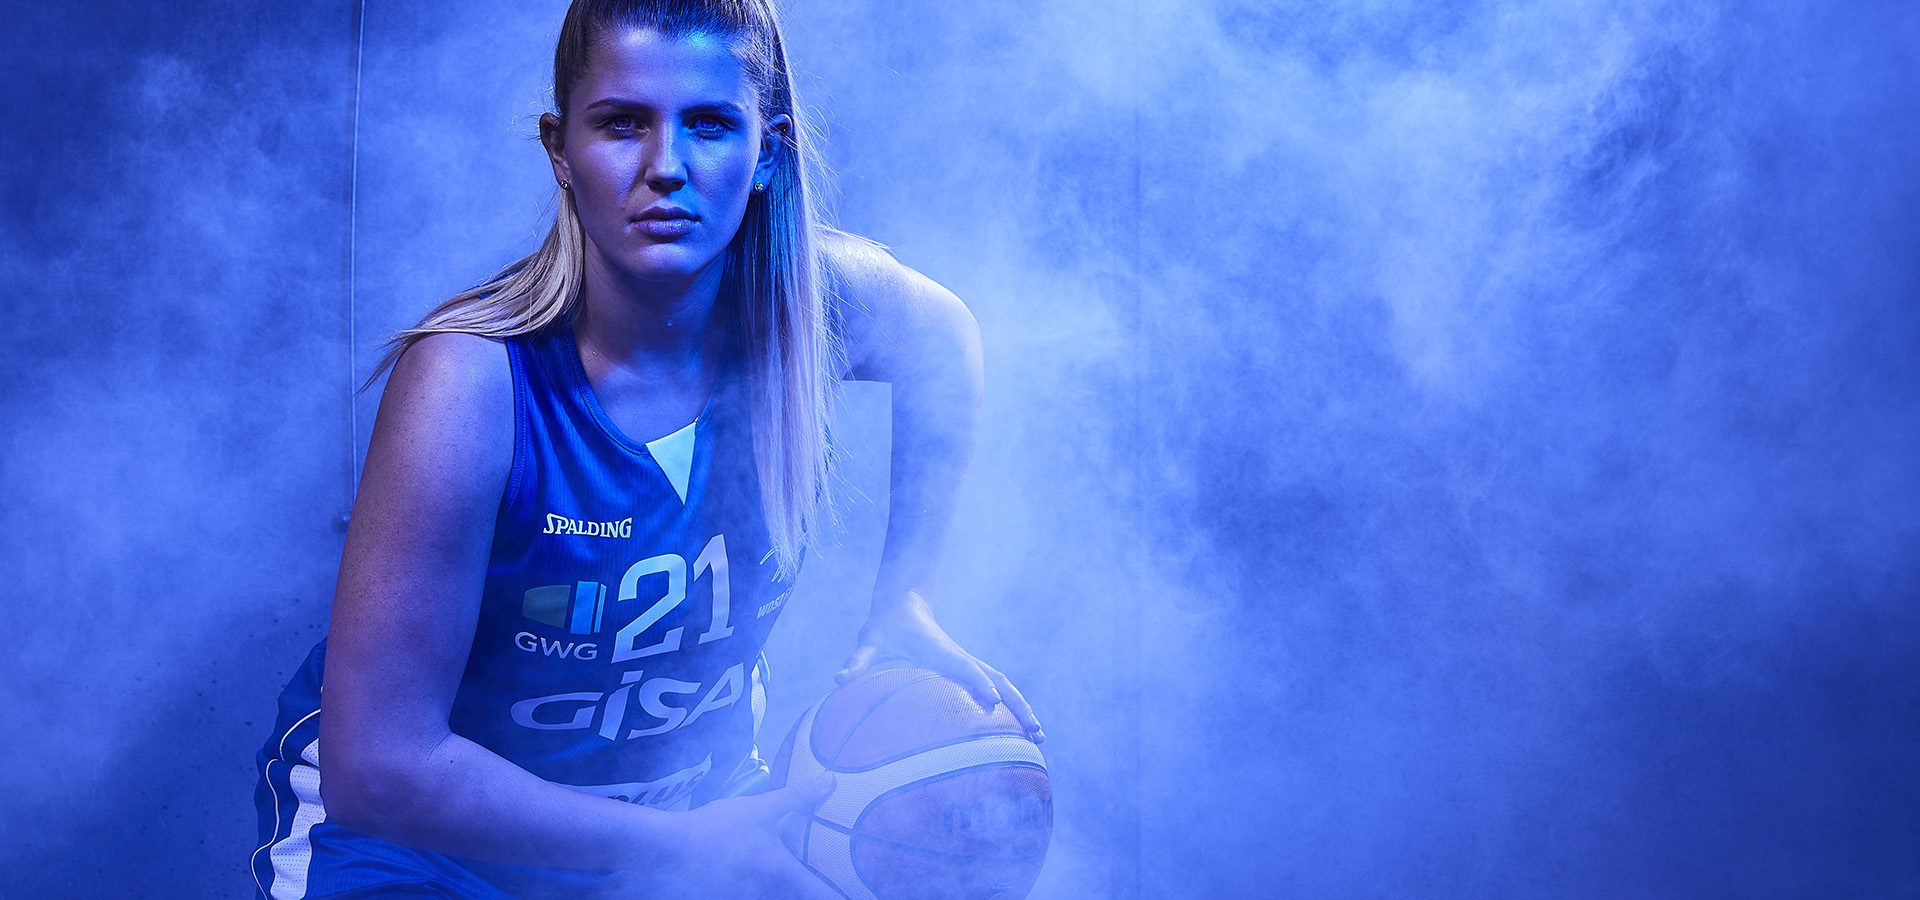 Spielerportraits Mannschaft 2. Basketball Bundesliga Damen Warmuth Fotografie